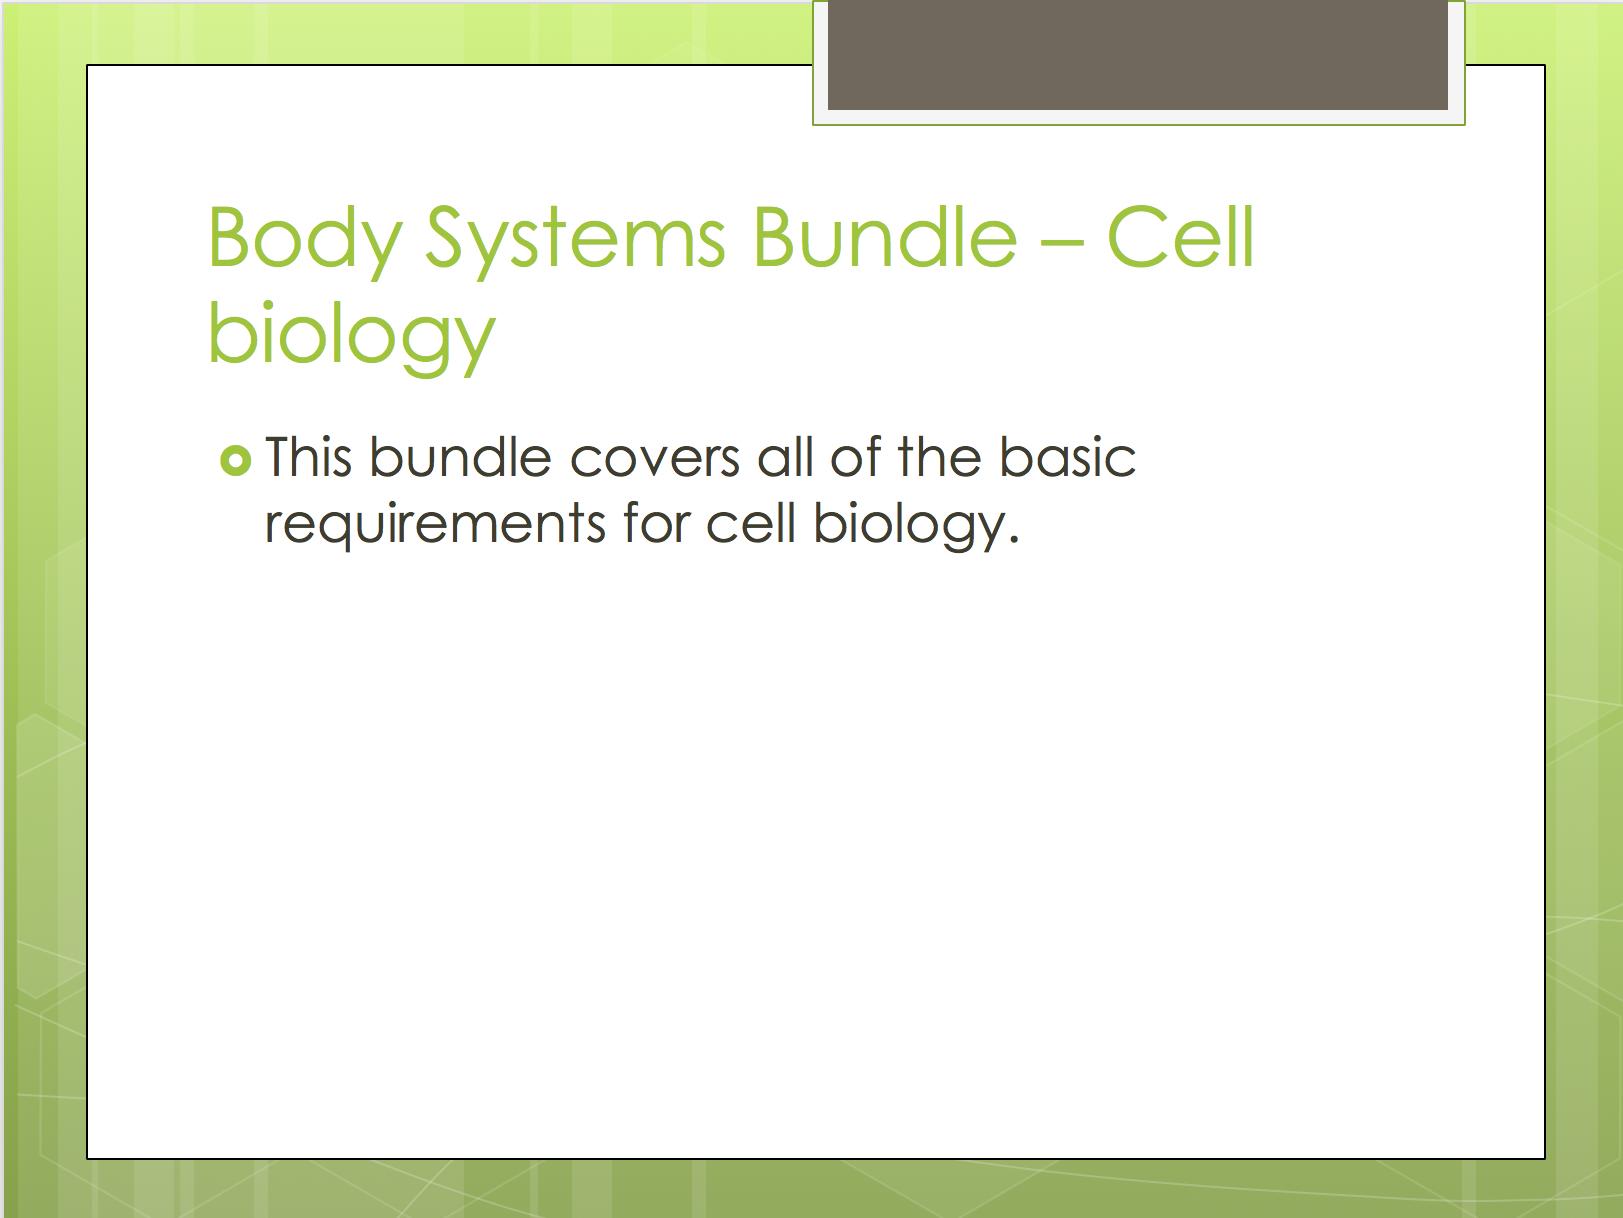 Cellular Biology Resources Elementary School Cells Body Systems Cell